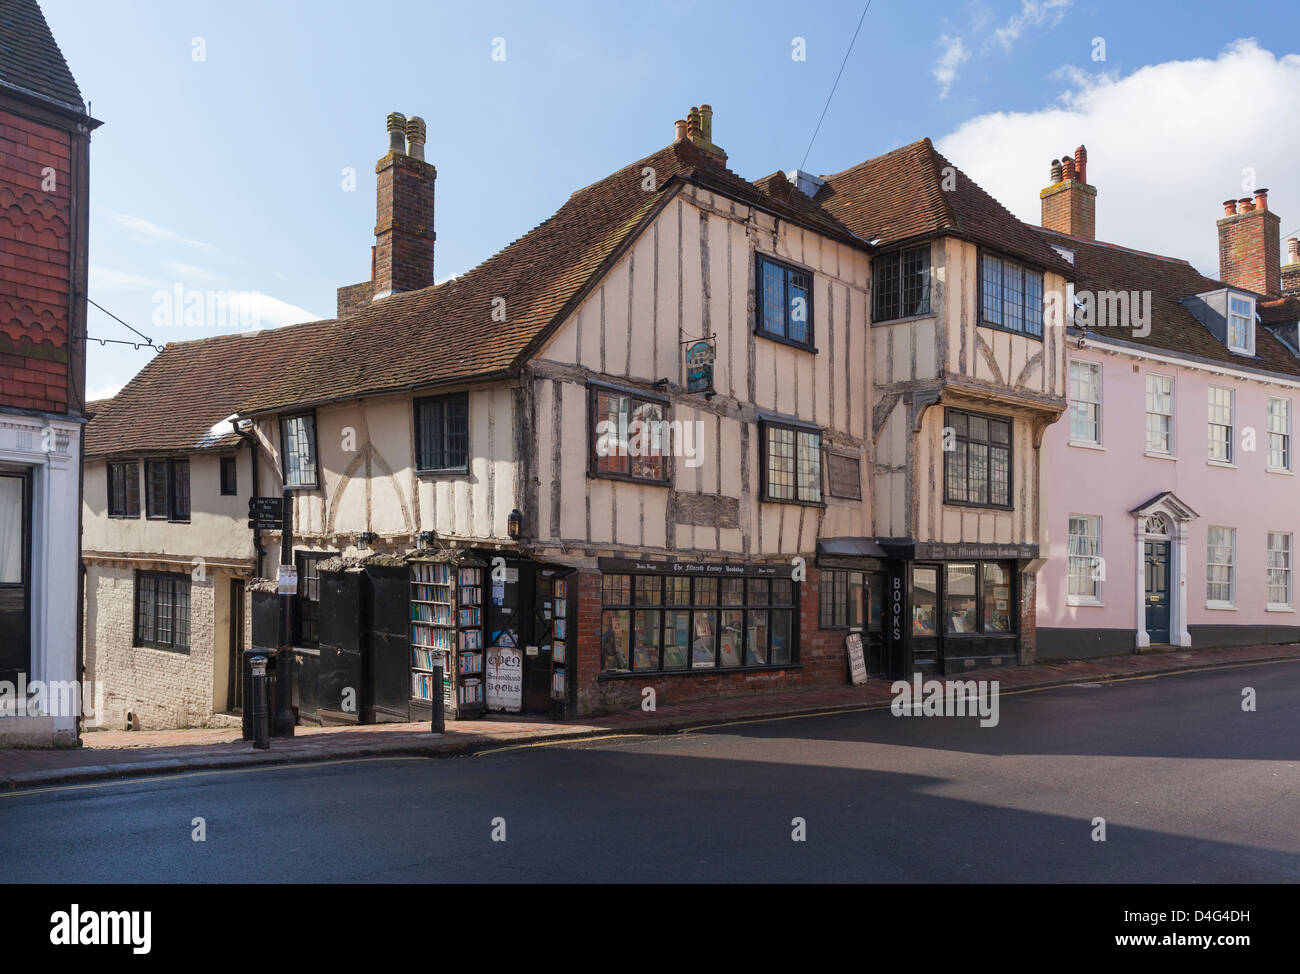 The Fifteenth Century bookshop in Lewes, East Sussex - Stock Image